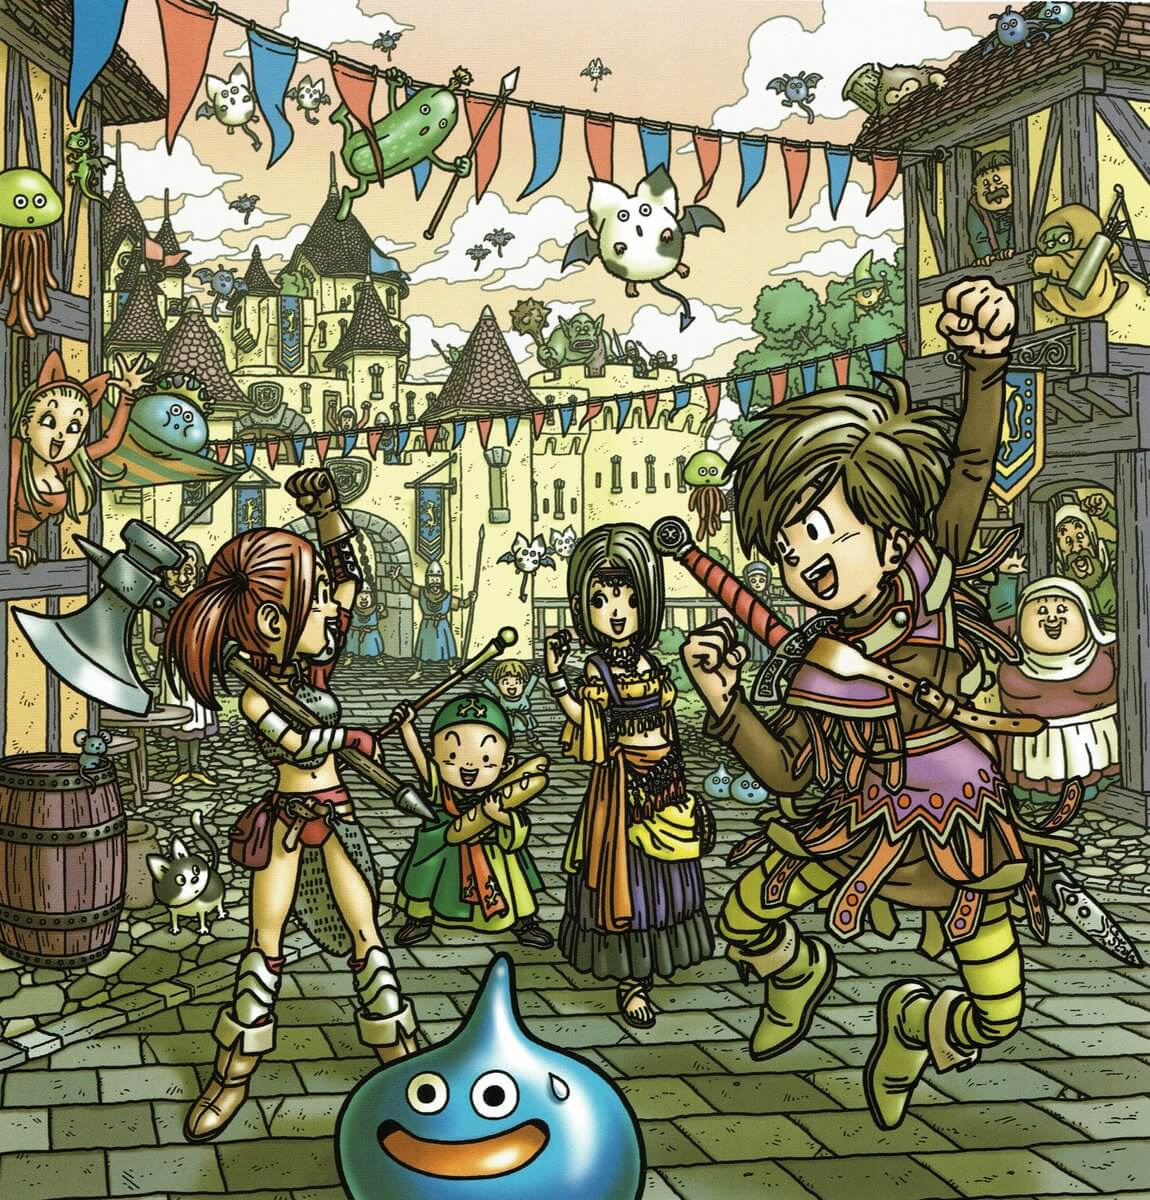 Dragon Quest FM, Episode 33: Dragon Quest IX Deep Dive (Episode Four): Let's Talk About the Gittish Empire, Grottos, and Our Favorite Games of the Year!